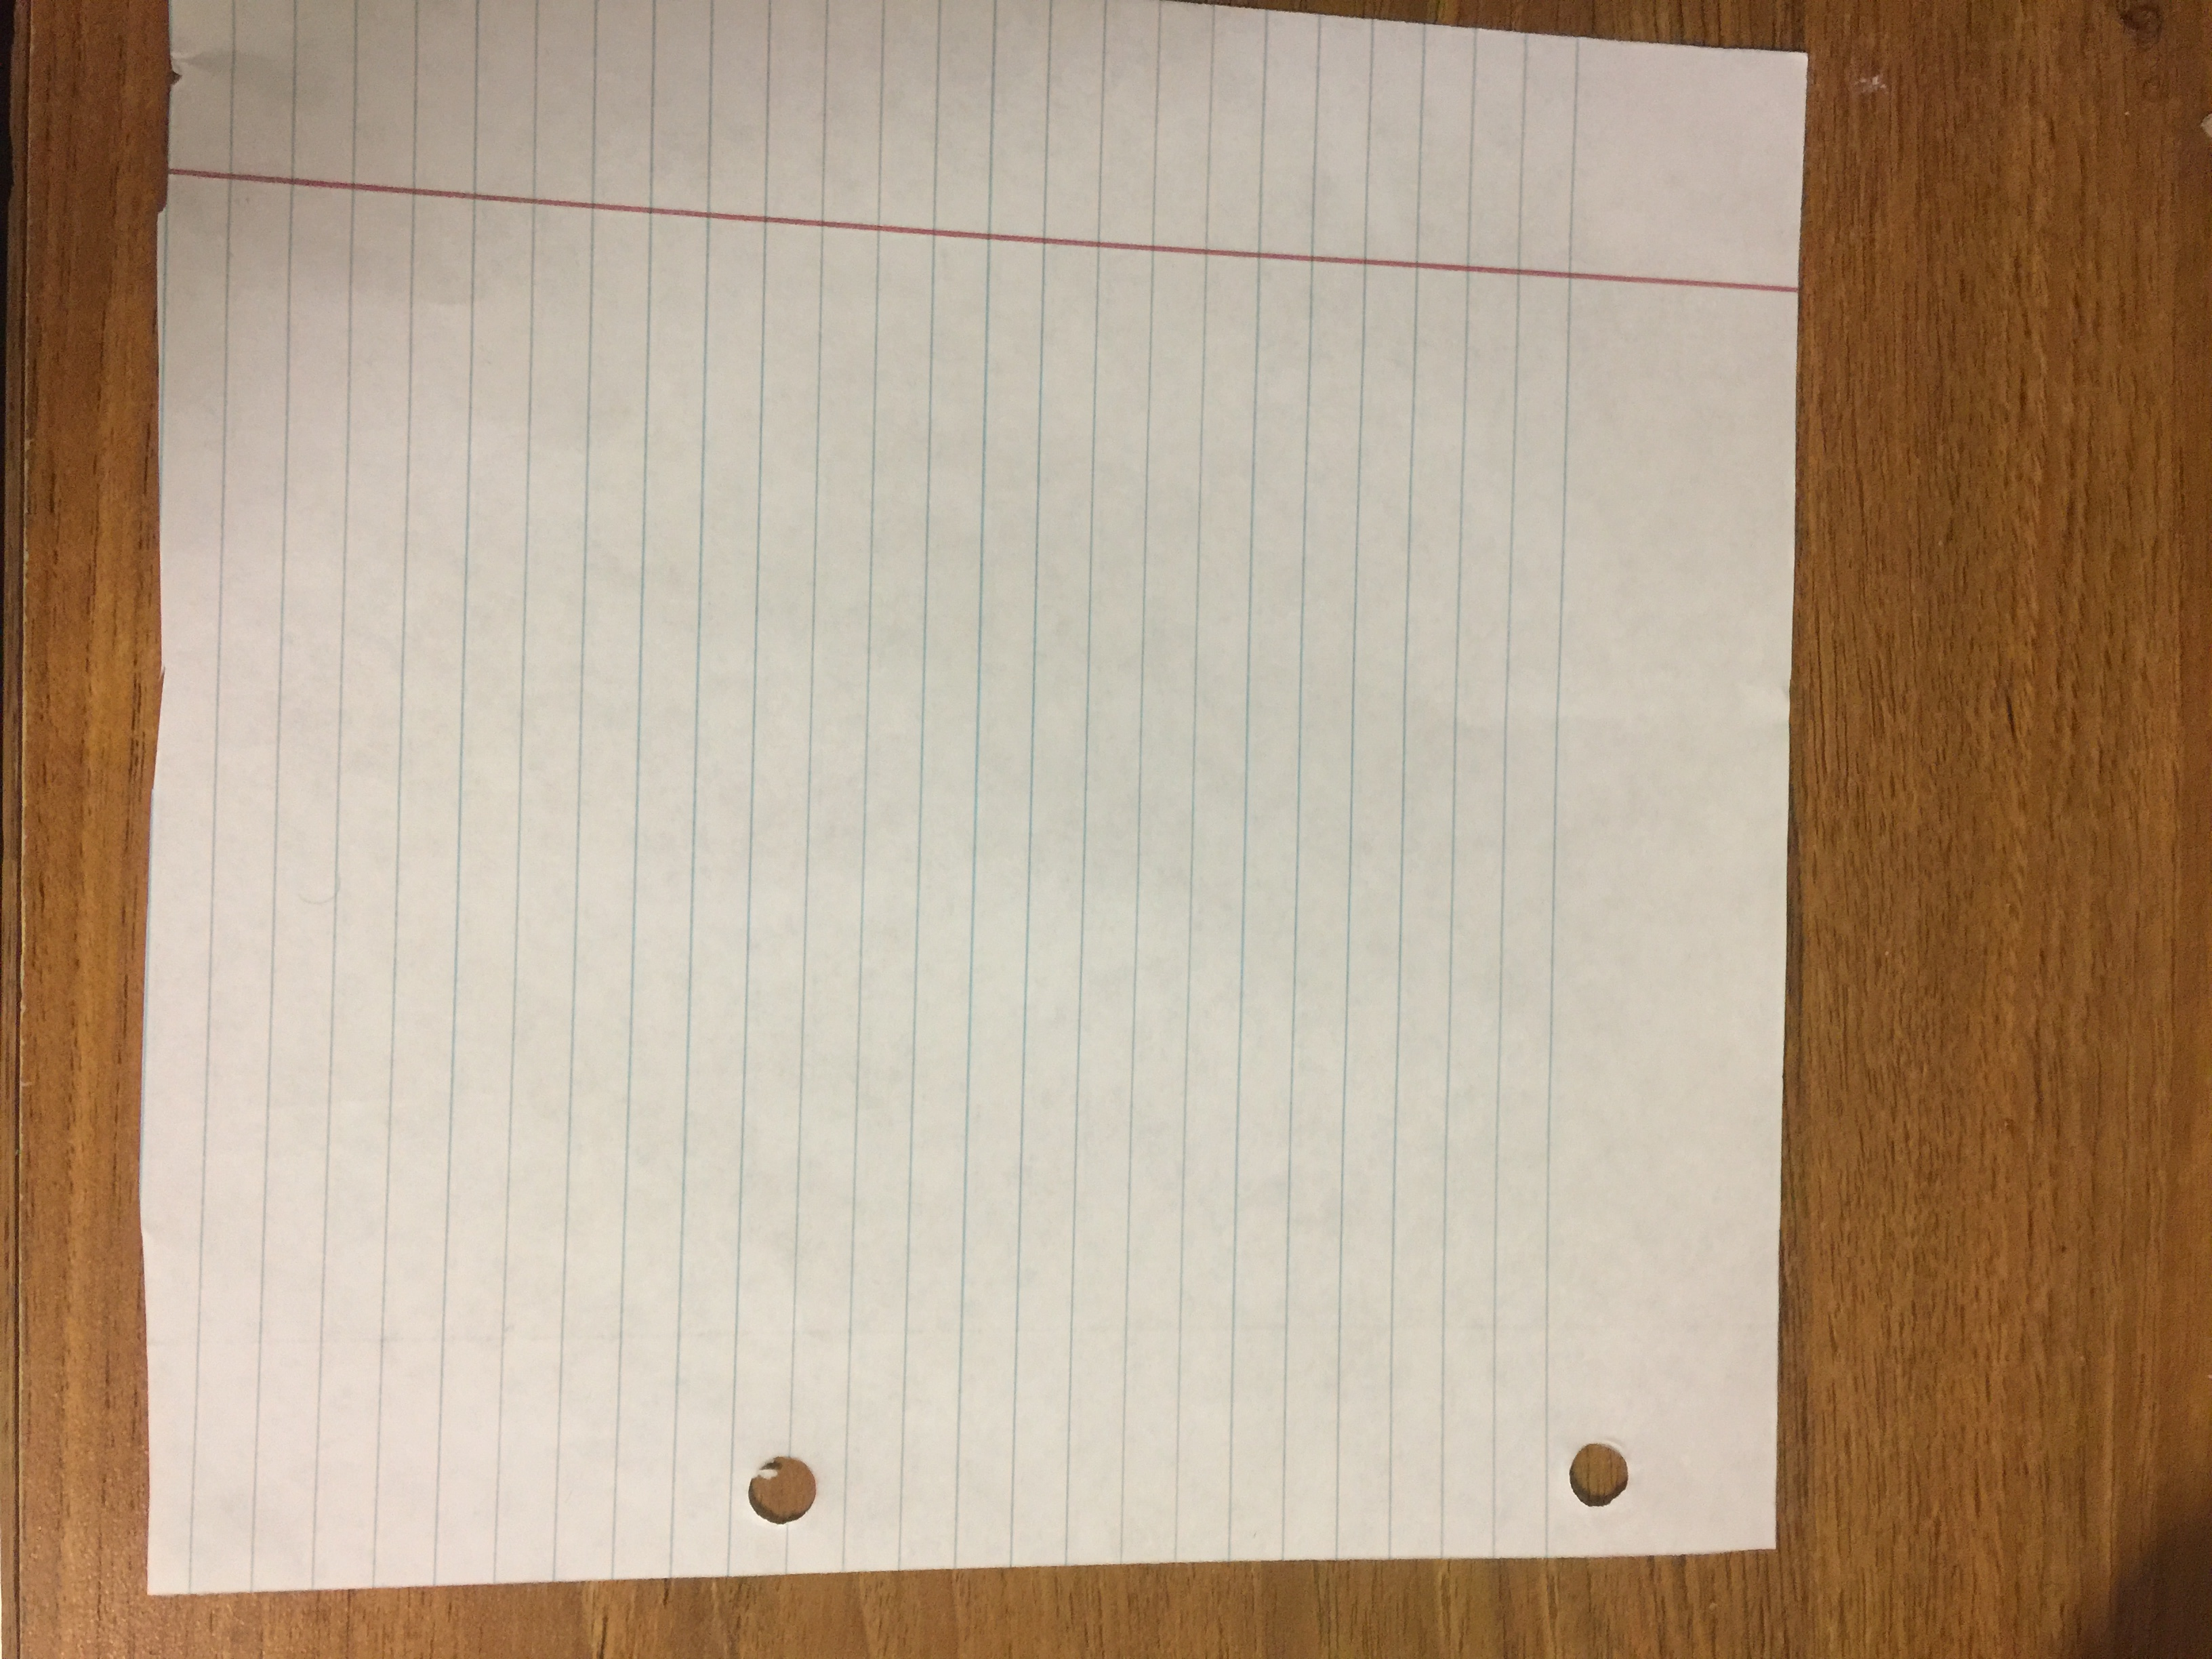 Picture of Cut the Paper to Make a Square